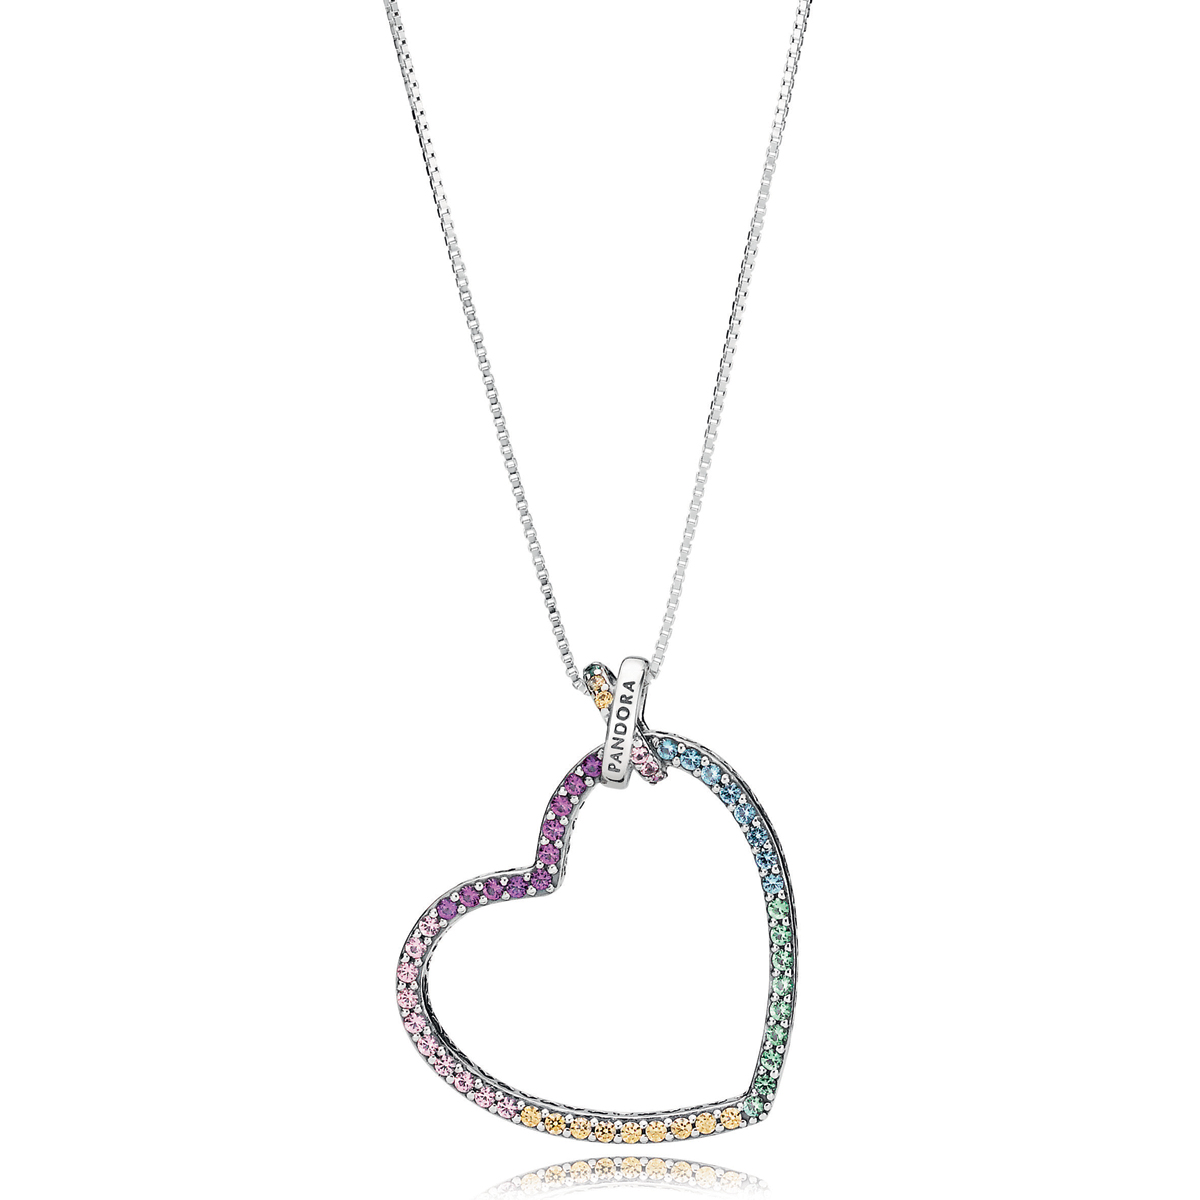 products pave adina reyter pav heart jewellery folded necklace